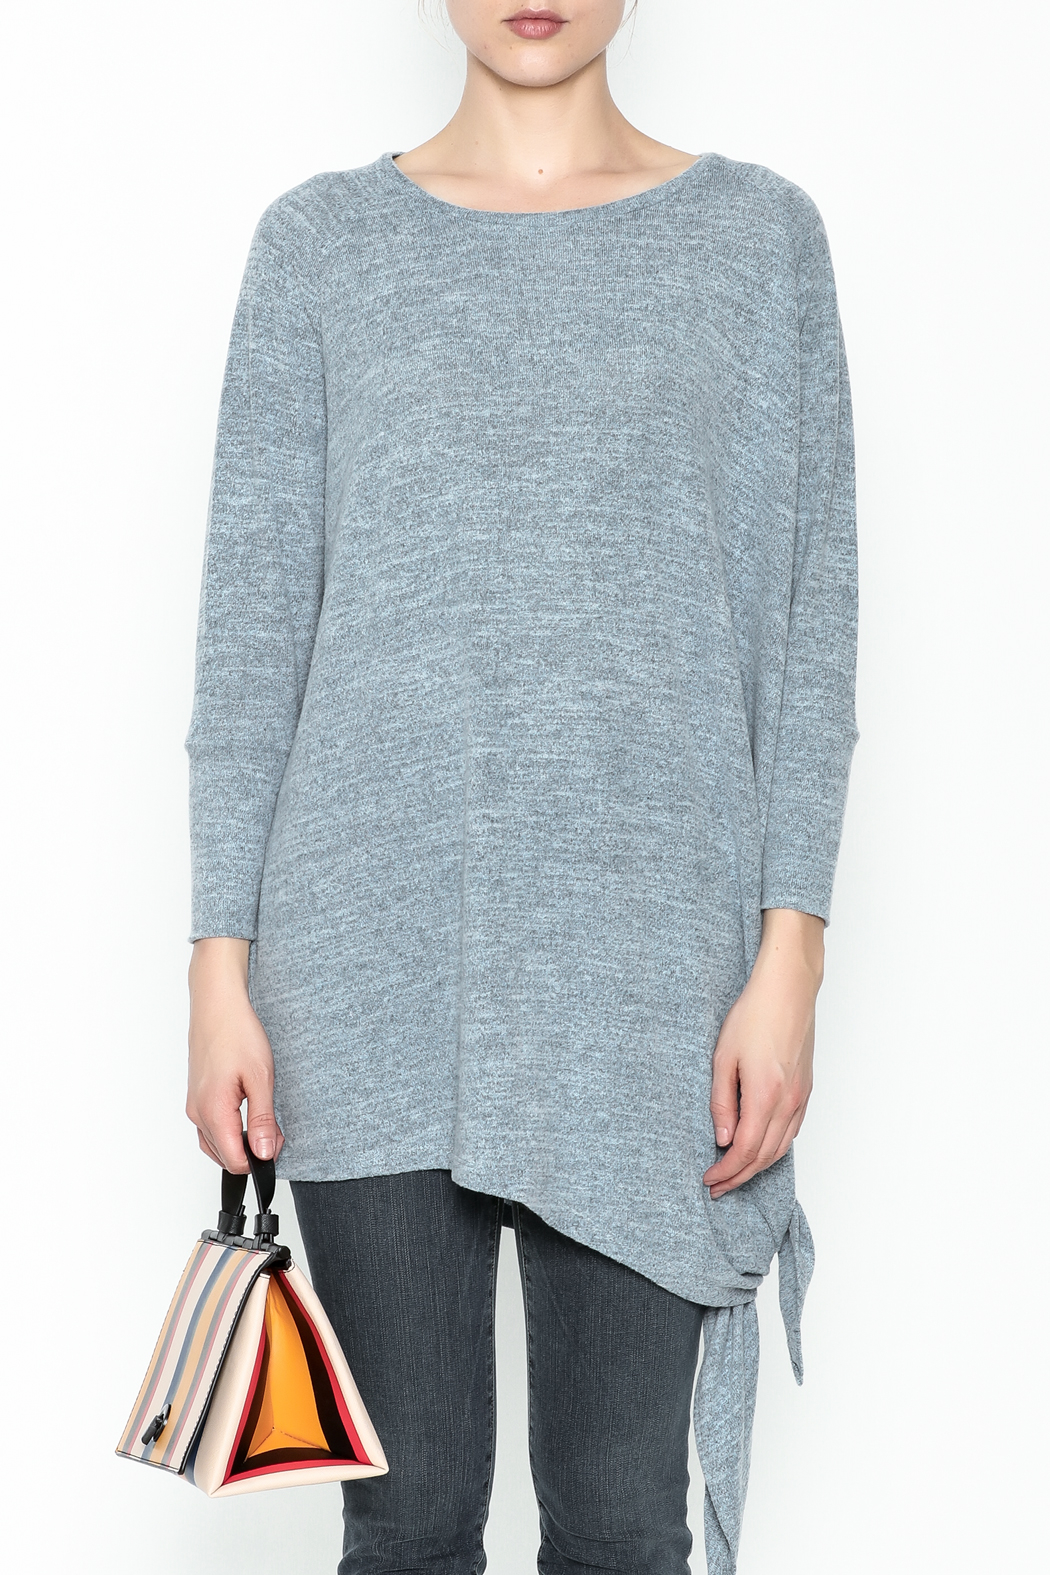 Coco + Carmen Assymetrical Tunic Top - Front Full Image